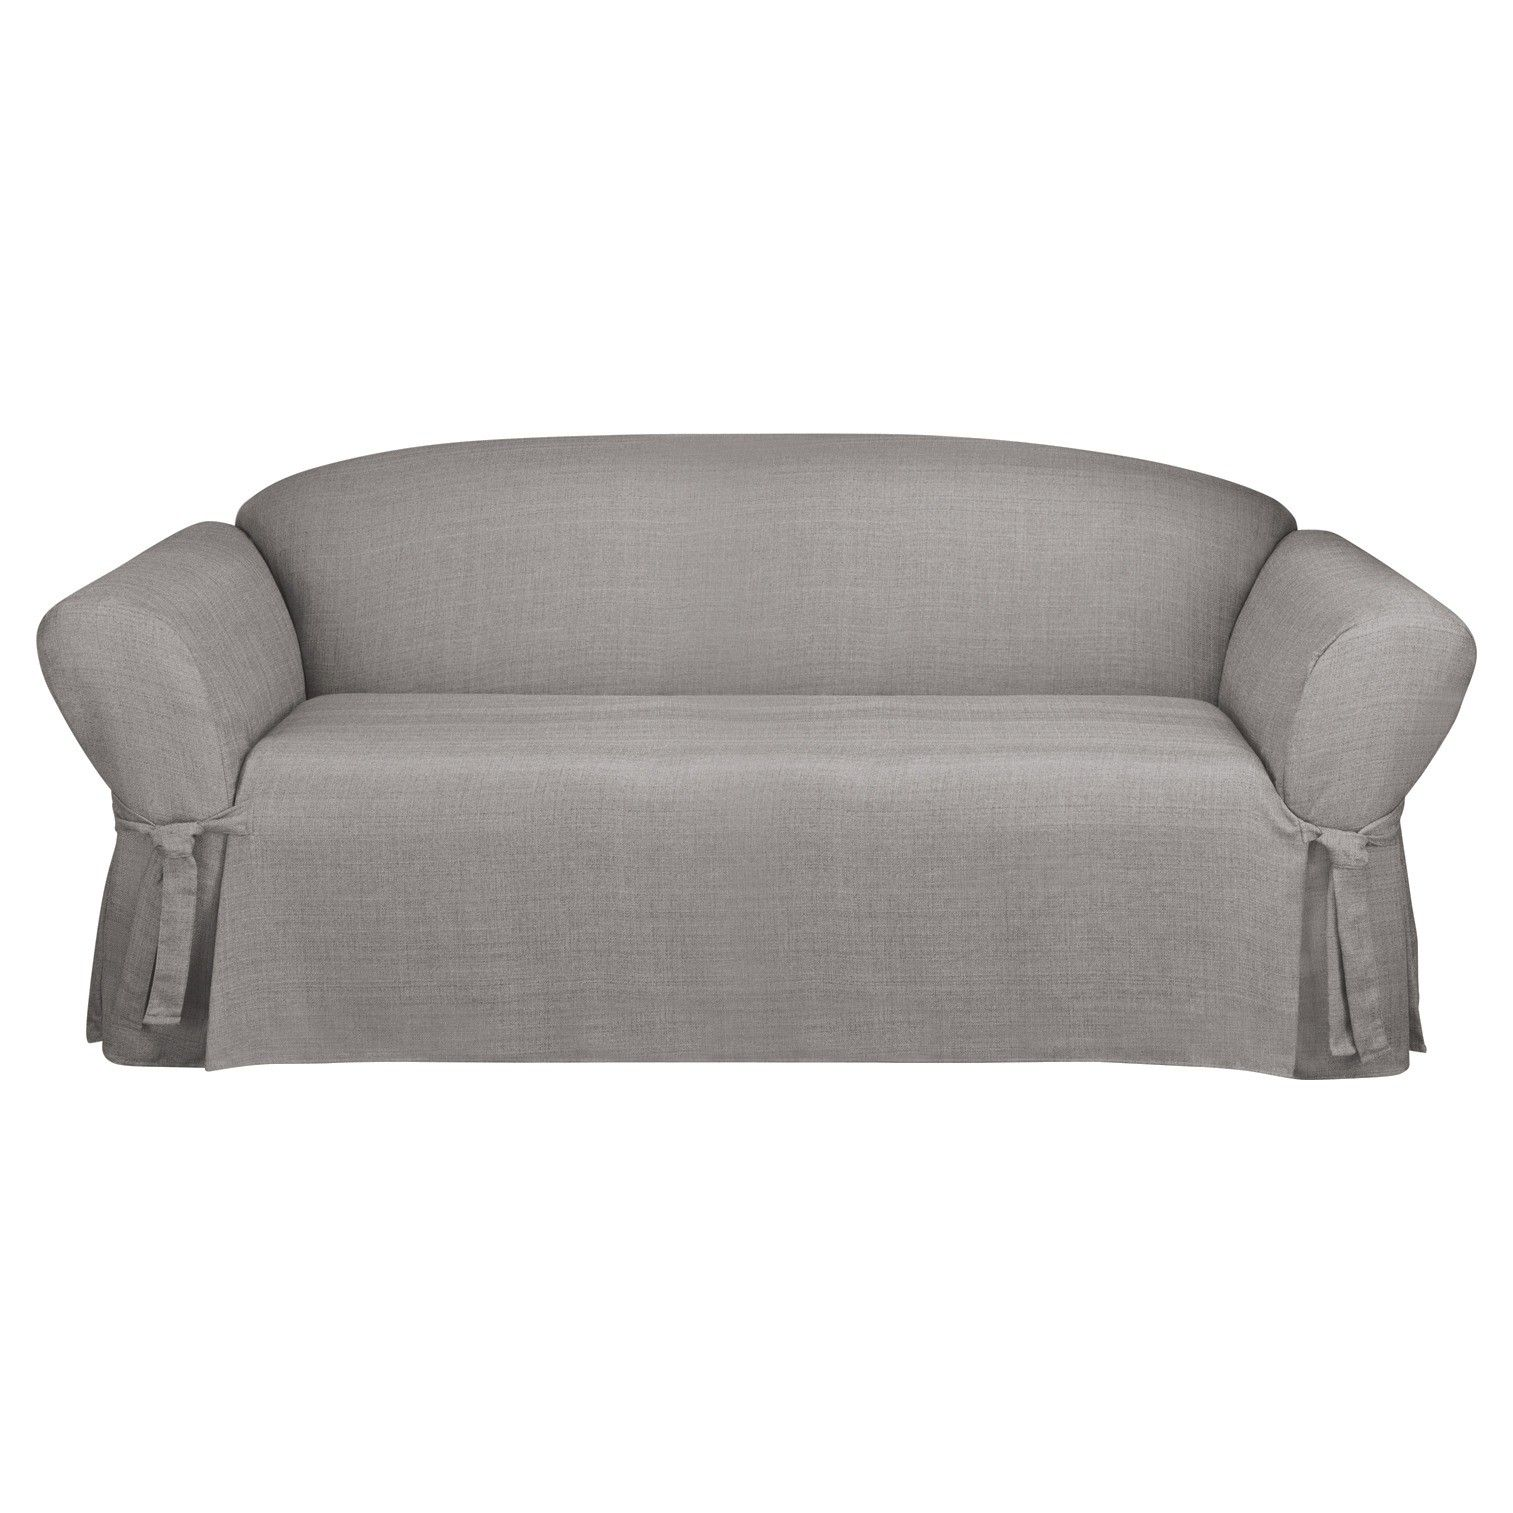 piece sofa white solid post embossing furniture slipcover sure related grey seersucker fit loveseat stretch color cover